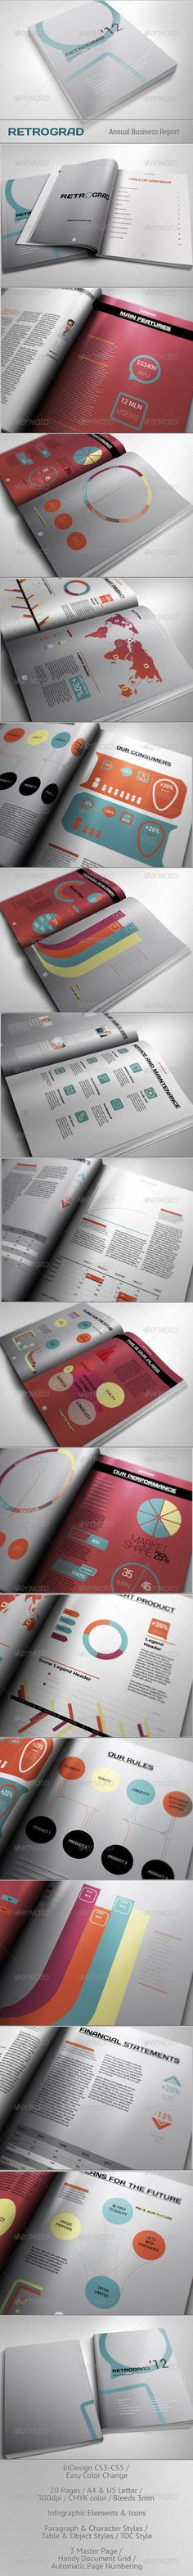 Retrograd - Annual Business Report - Corporate #Brochures Download here: https://graphicriver.net/item/retrograd-annual-business-report/3204648?ref=alena994